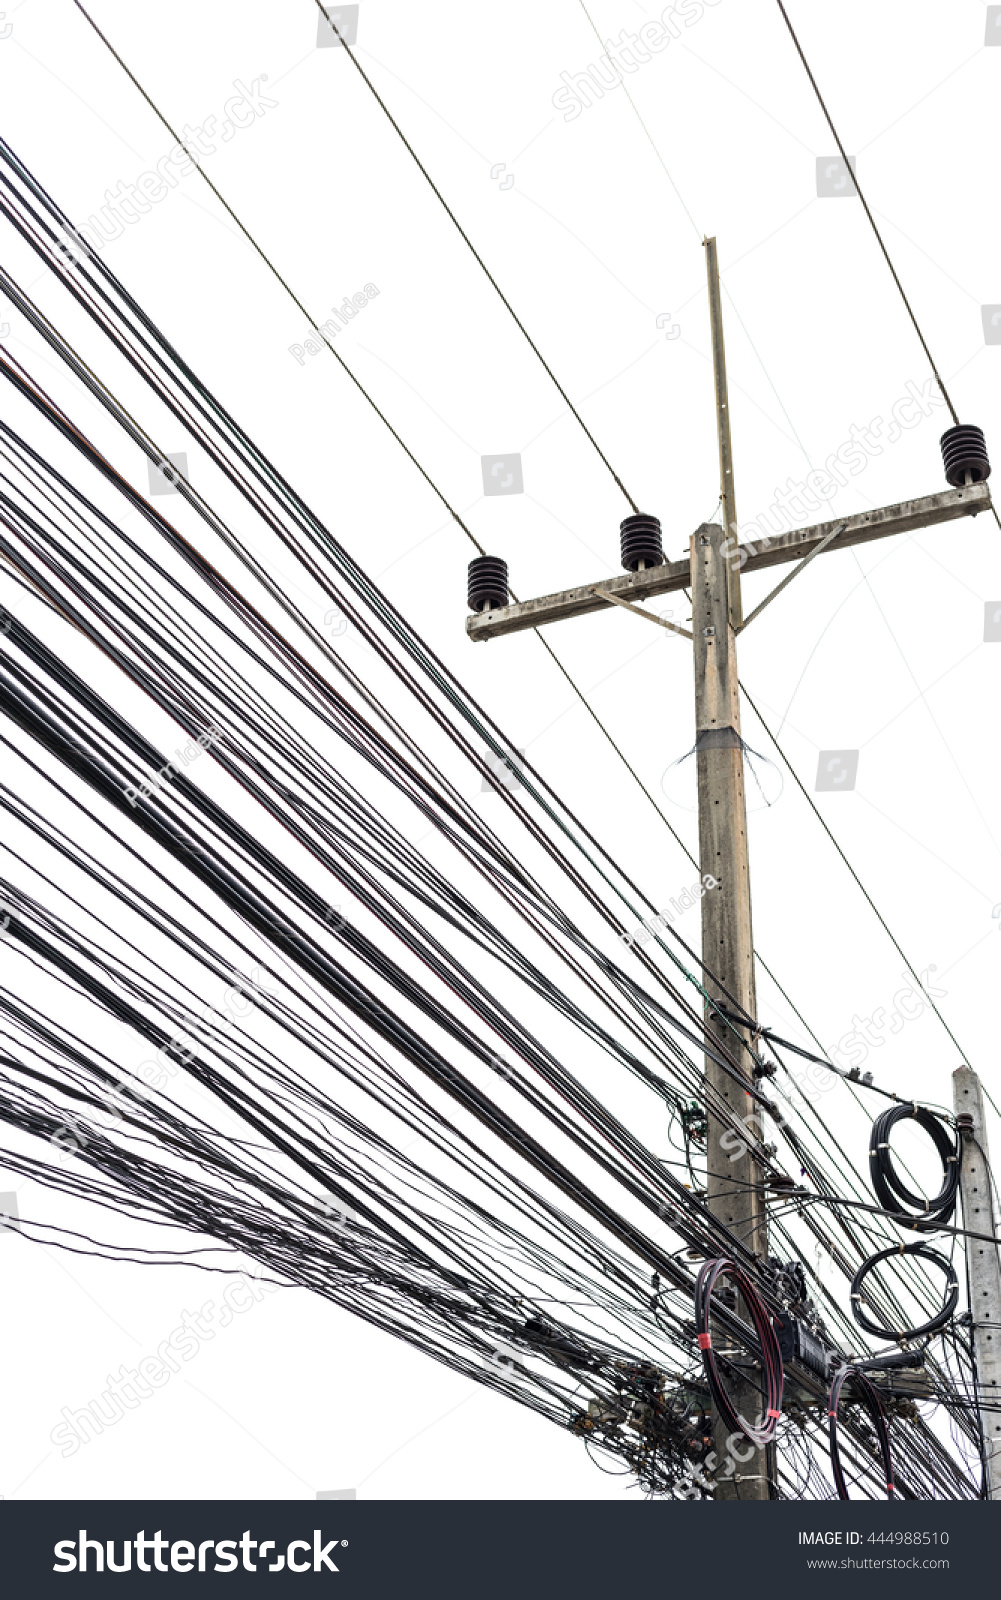 Electricity Cabletelephone Wire Fiber Optic Wire Stock Photo ...